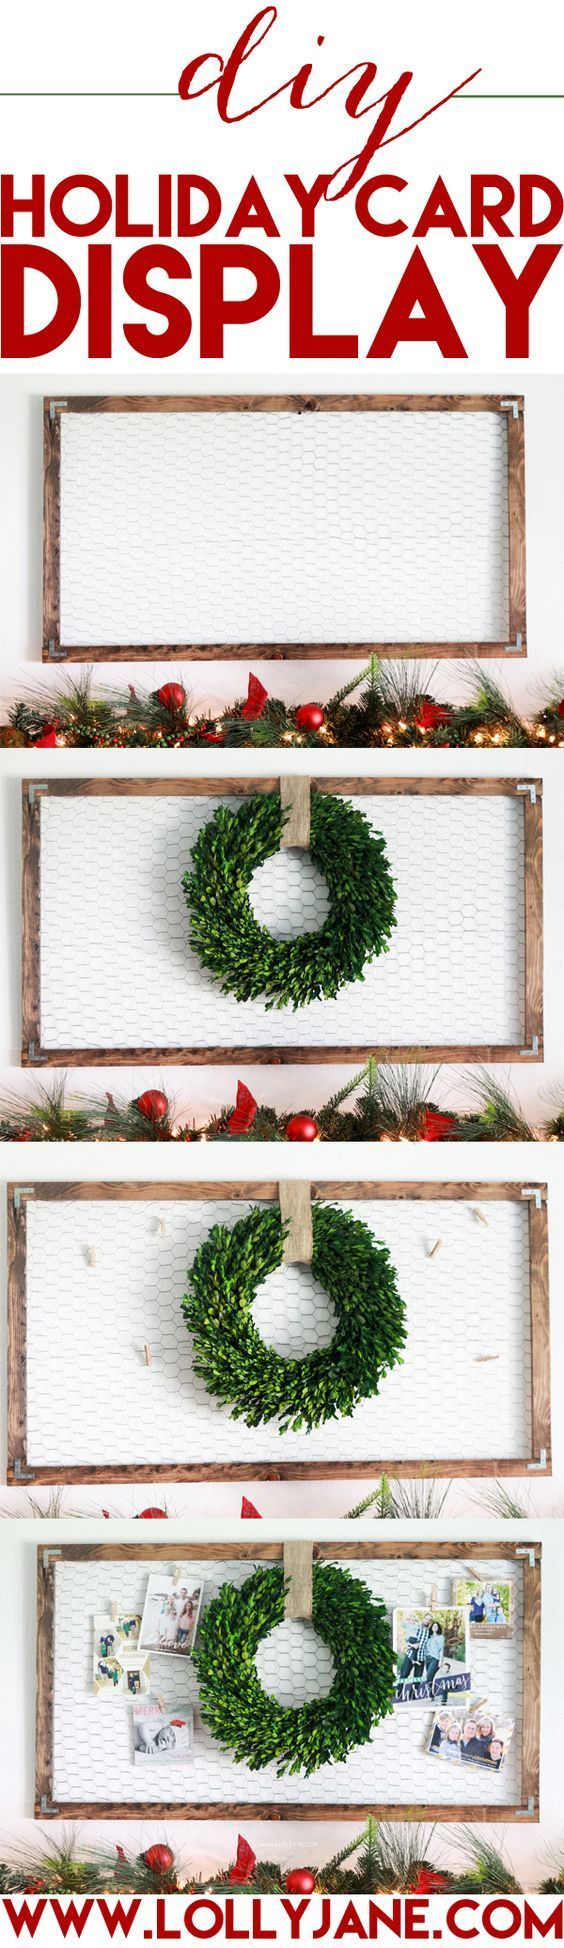 Wreath from old christmas cards - 271 Best Christmas Cards Santa Letters Family Newsletters Images On Pinterest Christmas Card Display Card Displays And Christmas Card Holders